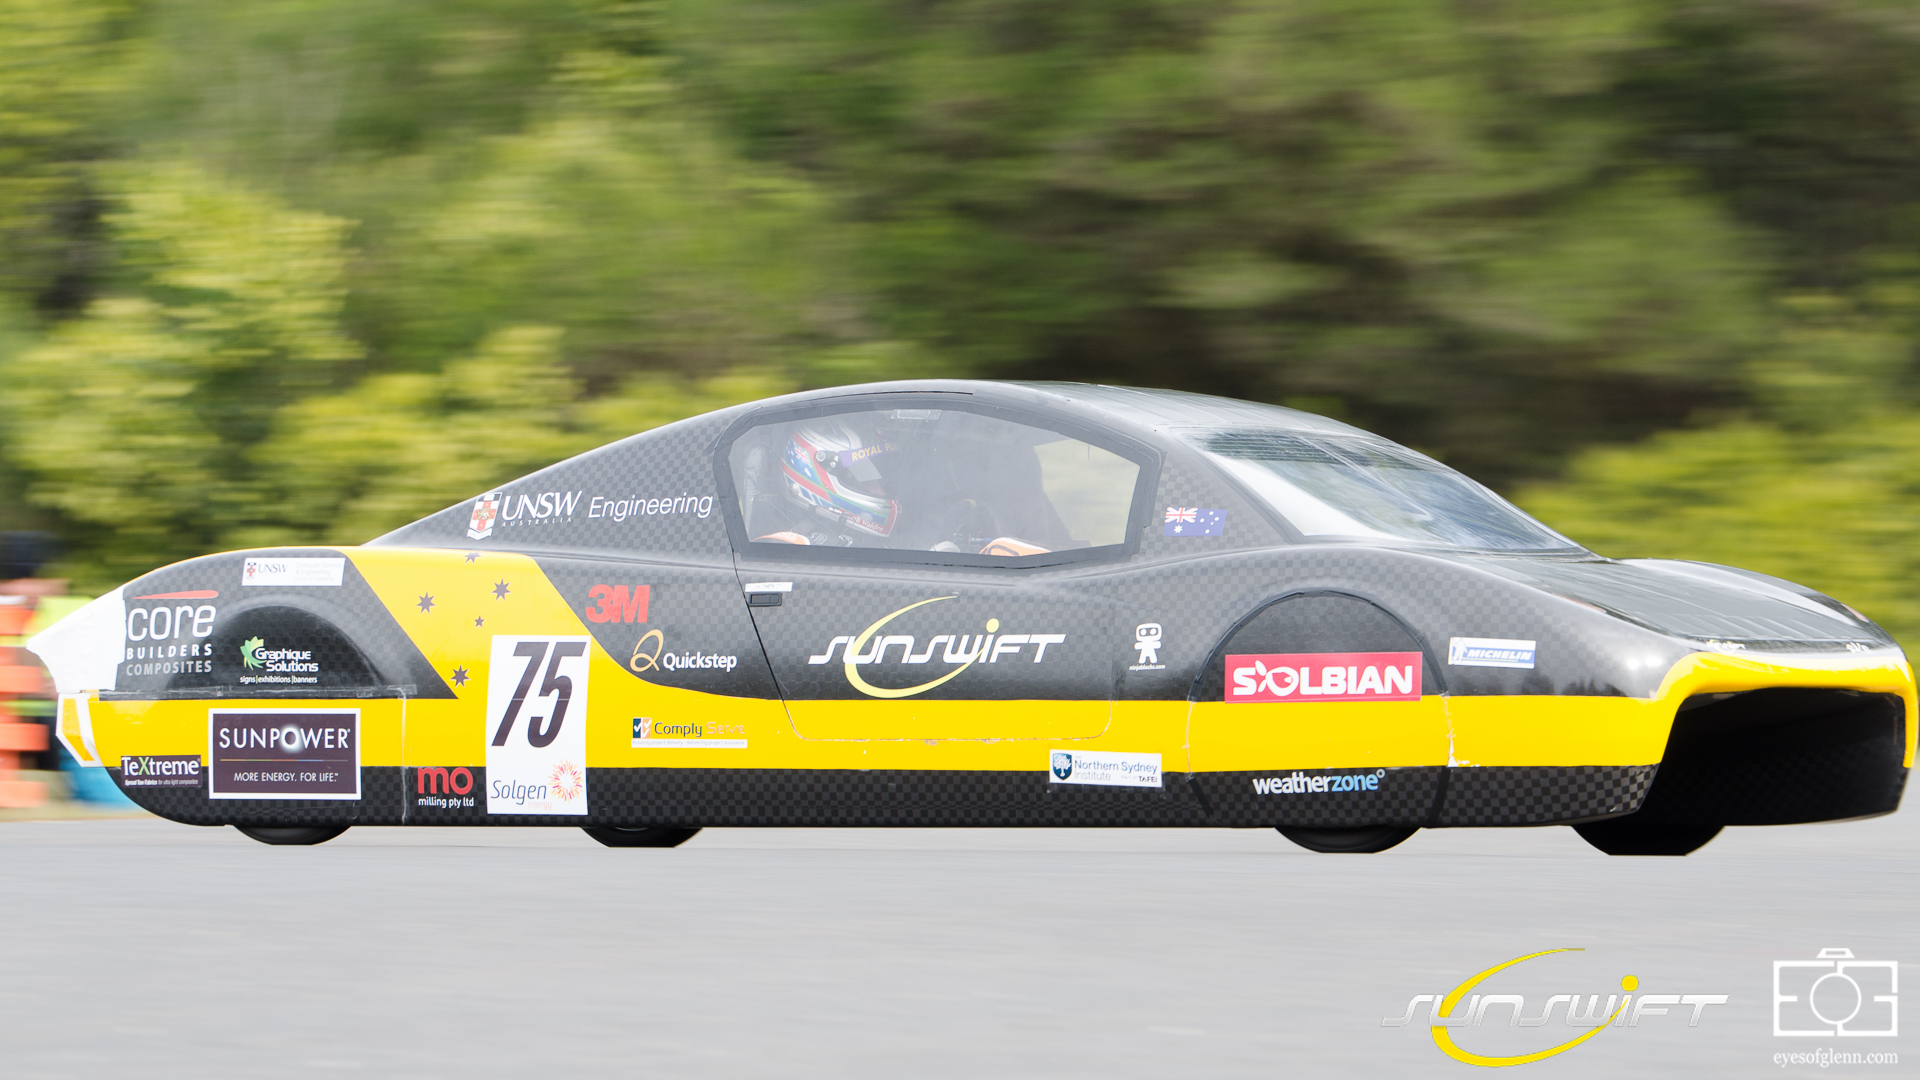 Sunswift Breaking the World Land Speed Record for an Electric Vehicle in 500km at a speed of 107km/h